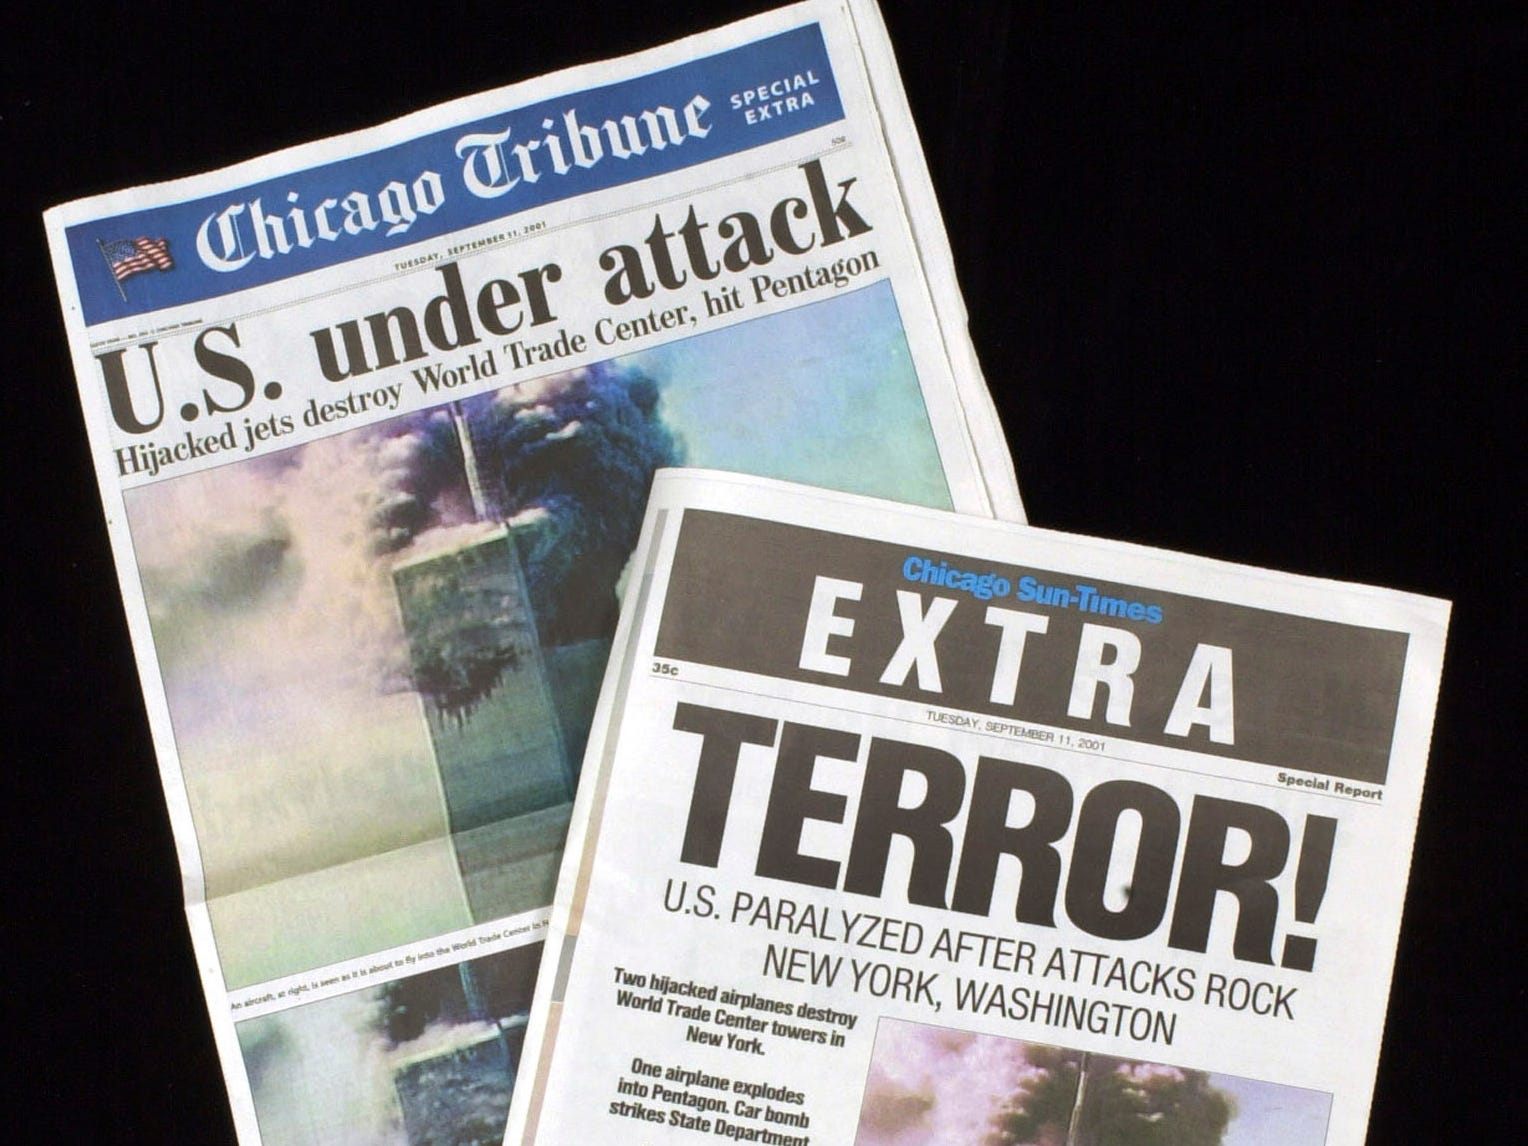 Special  extra editions of the Chicago papers are published  on the terroist attack on the World Trade Center towers in New York, Tuesday, Sept. 11, 2001 (AP Photo/Charles Bennett)